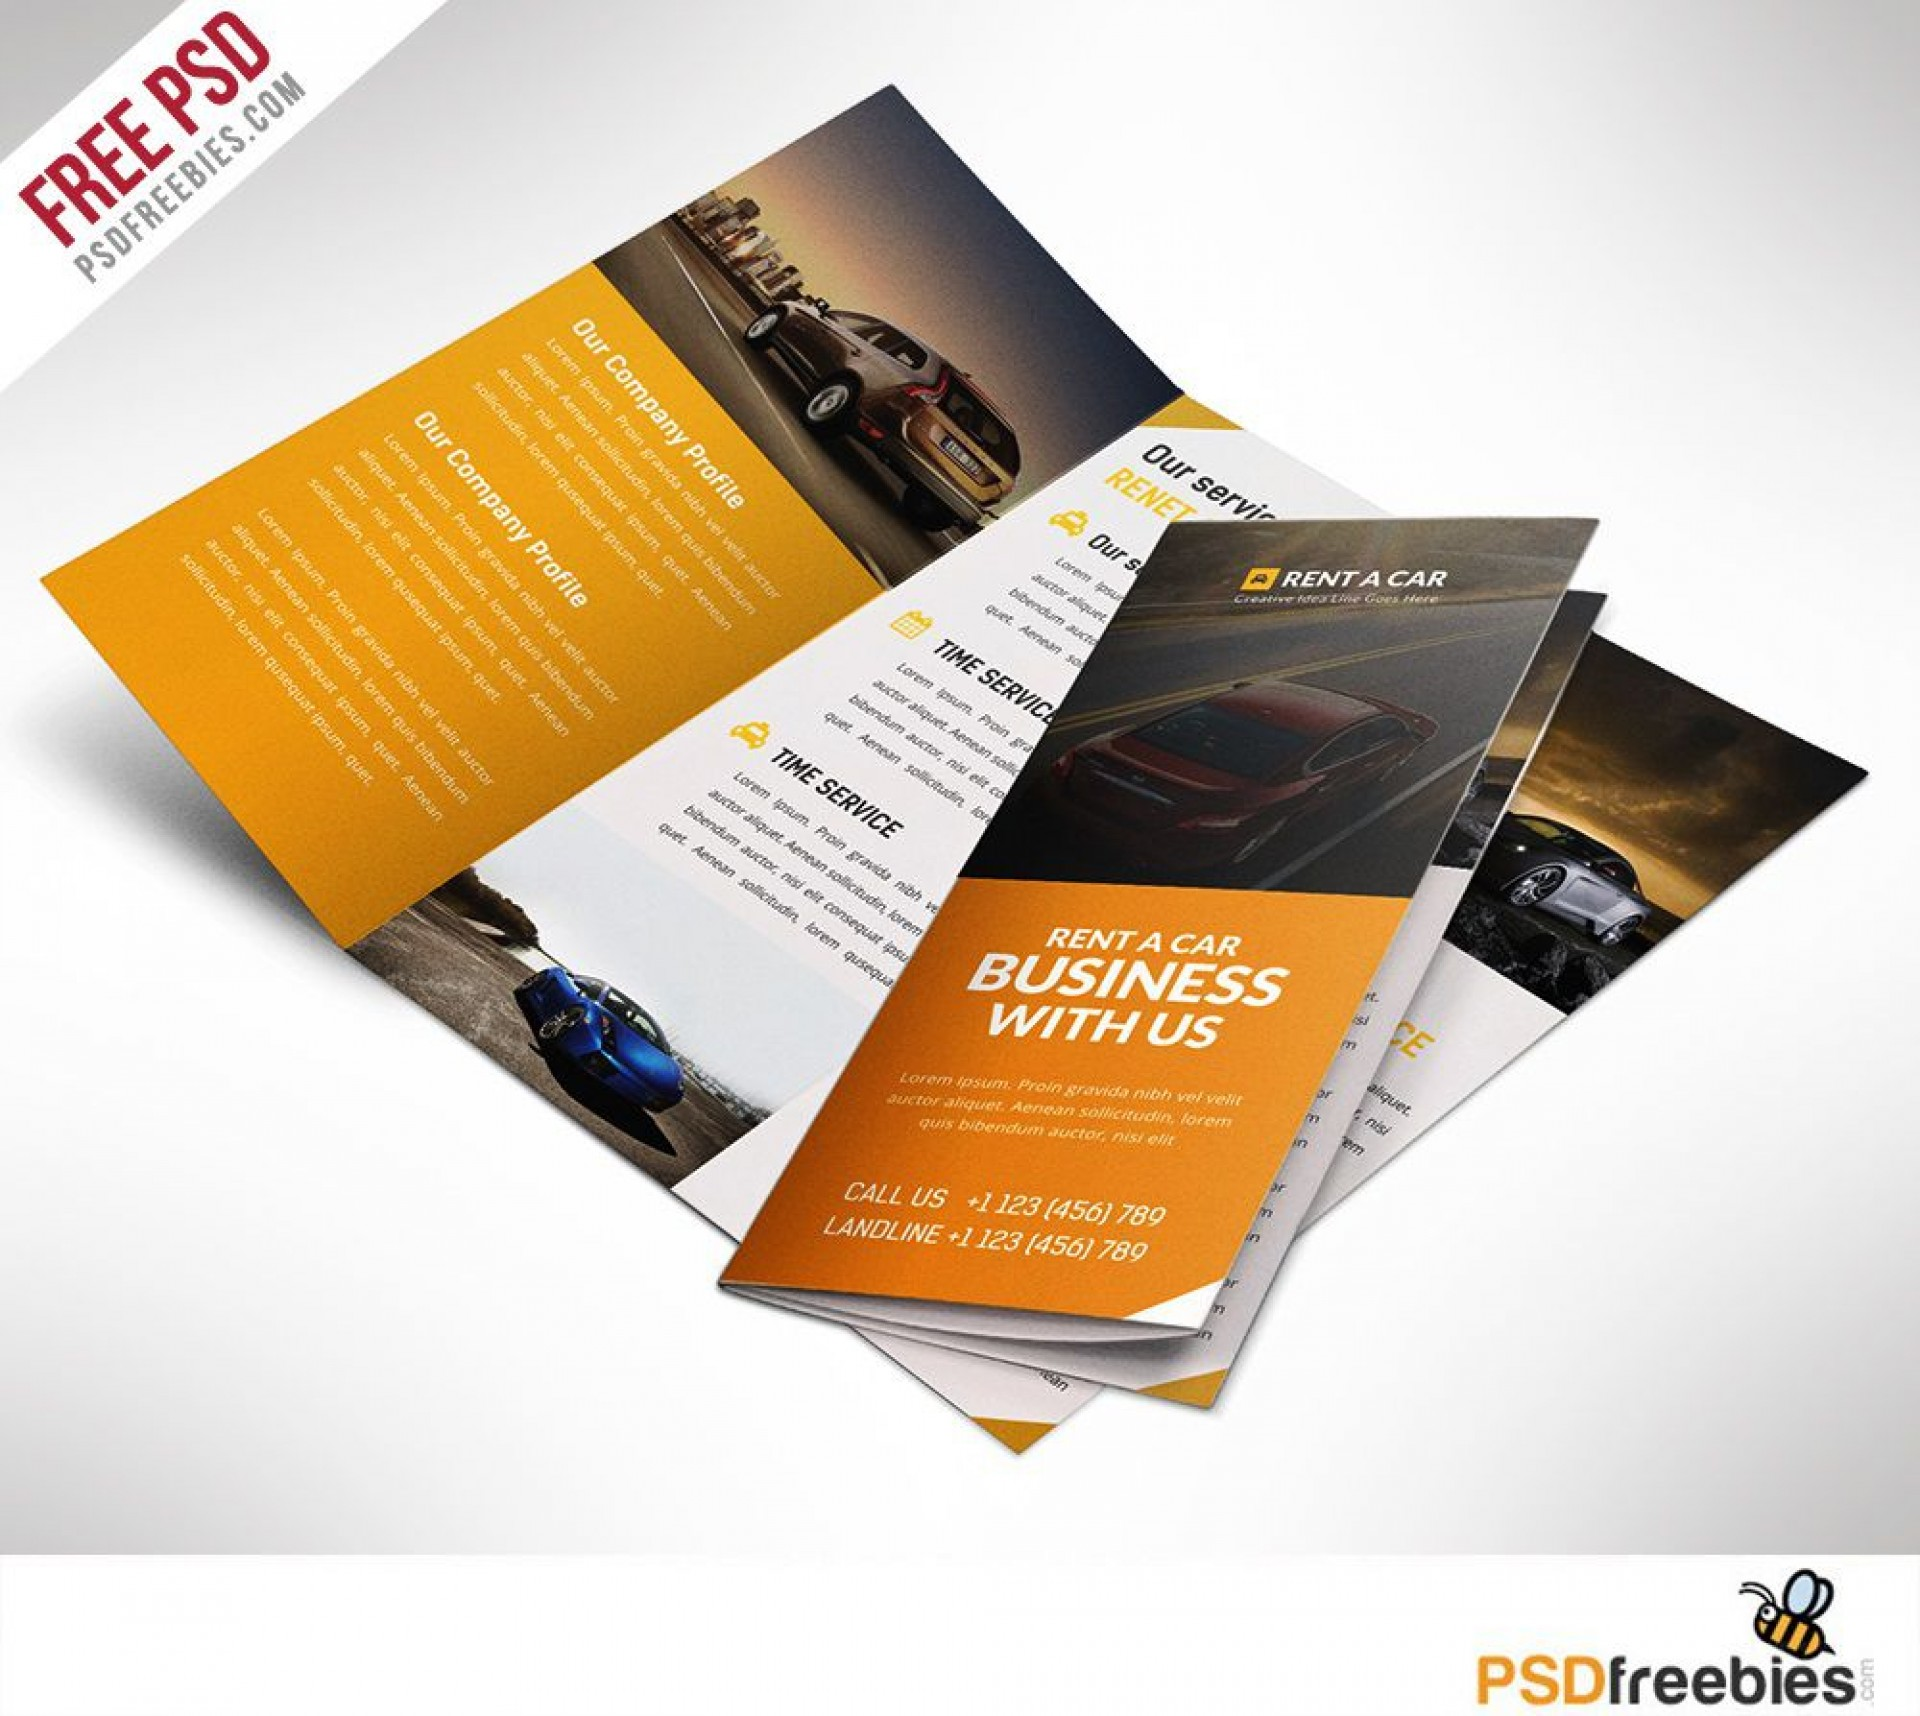 003 Incredible Brochure Template Photoshop Cs6 Free Download Image 1920